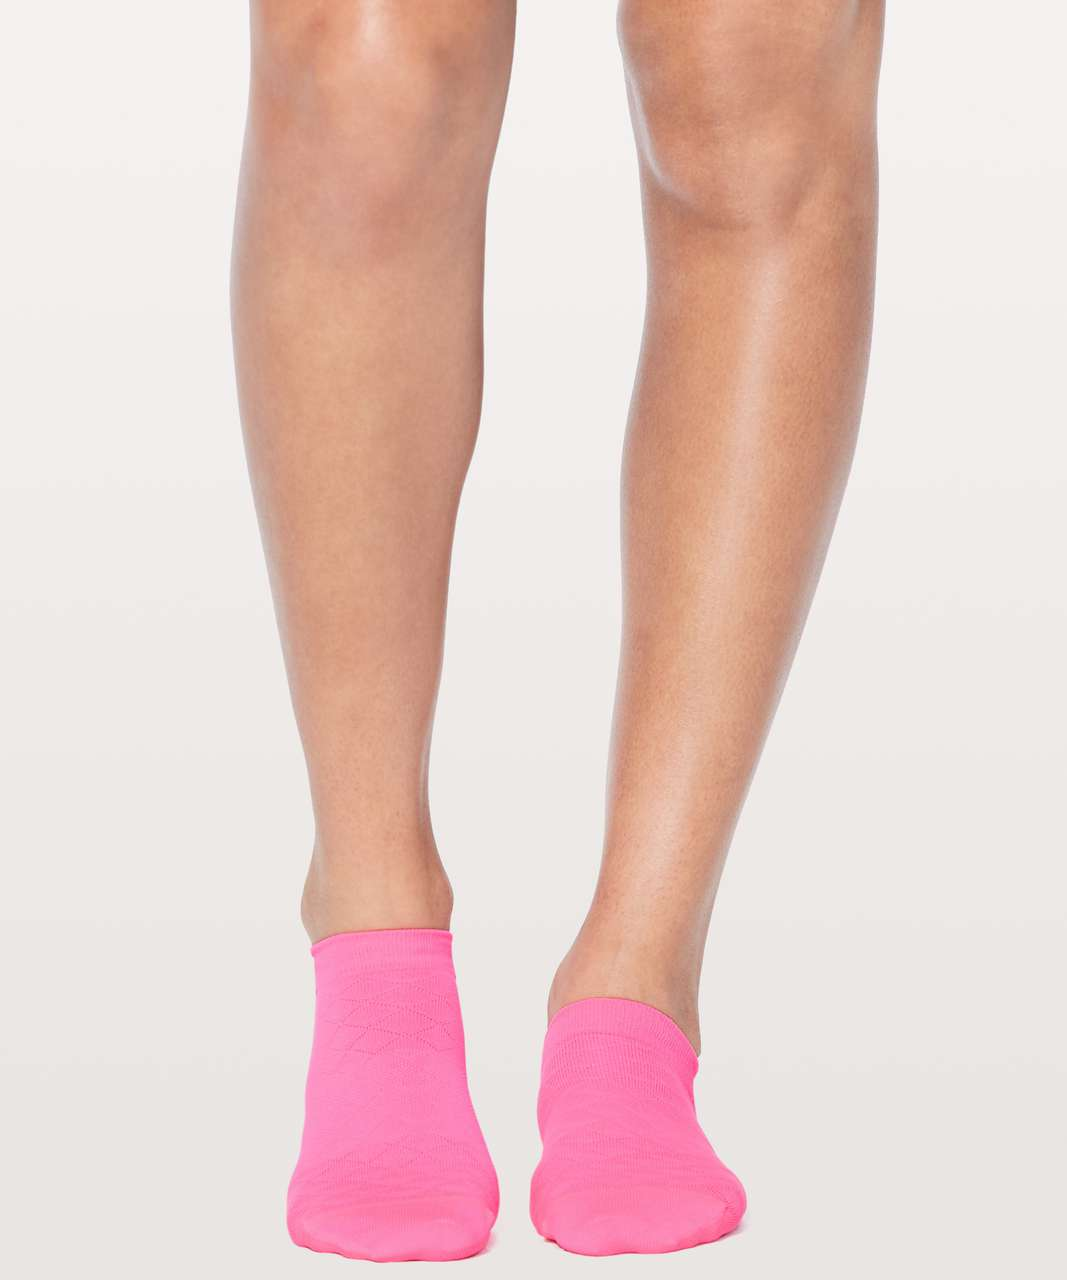 Lululemon Play All Day Sock 3 Pack - Strawberry Shock / Coralize / Zing Pink